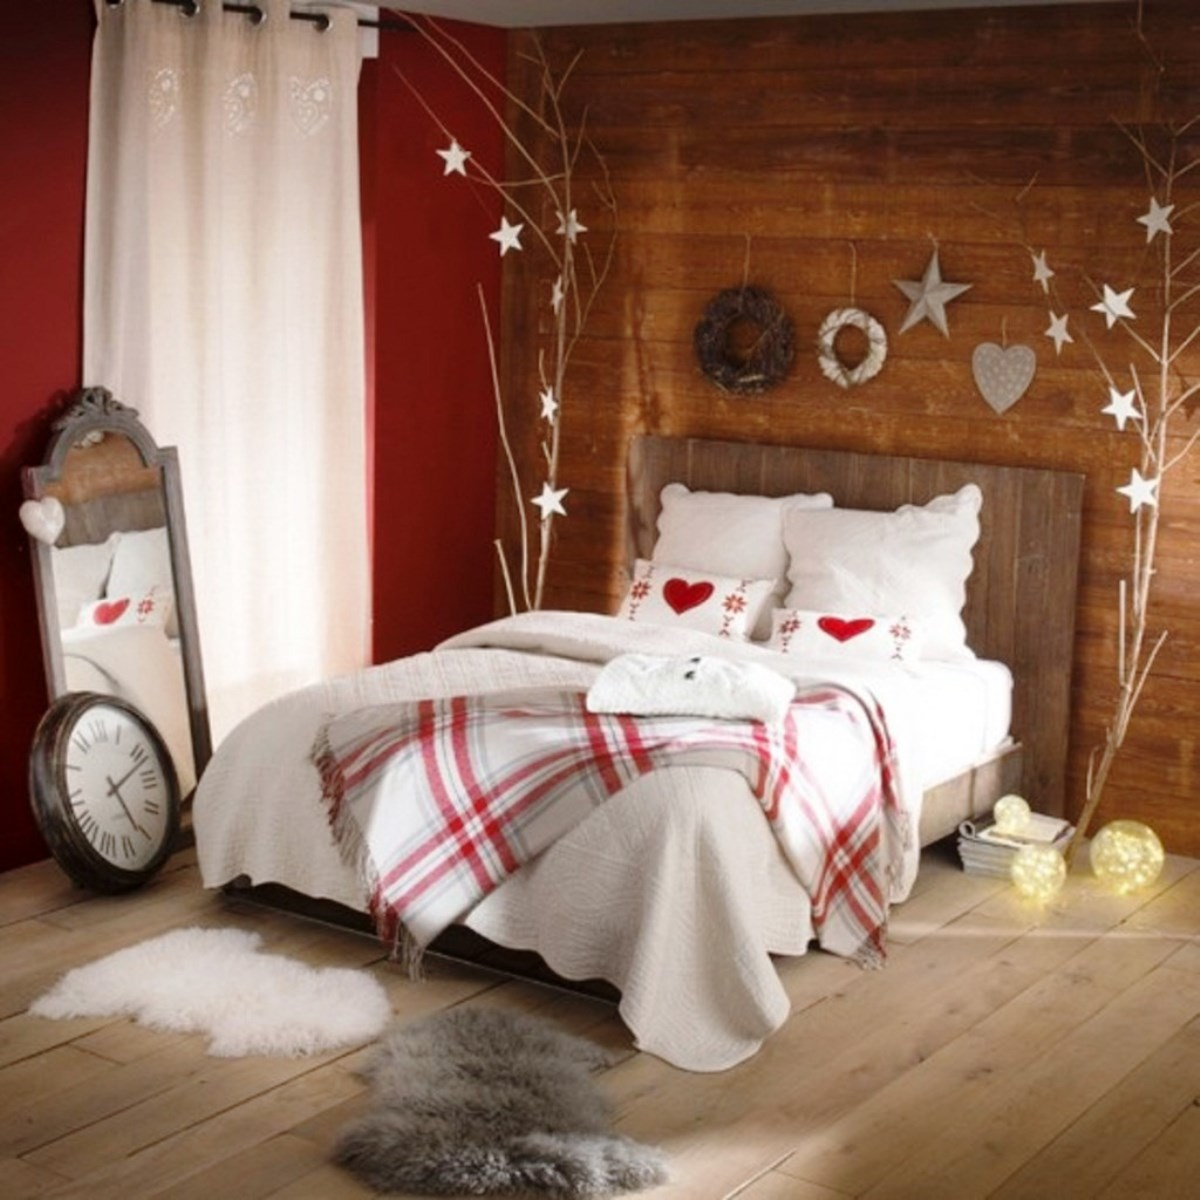 Bedding Decor: 30 Christmas Bedroom Decorations Ideas